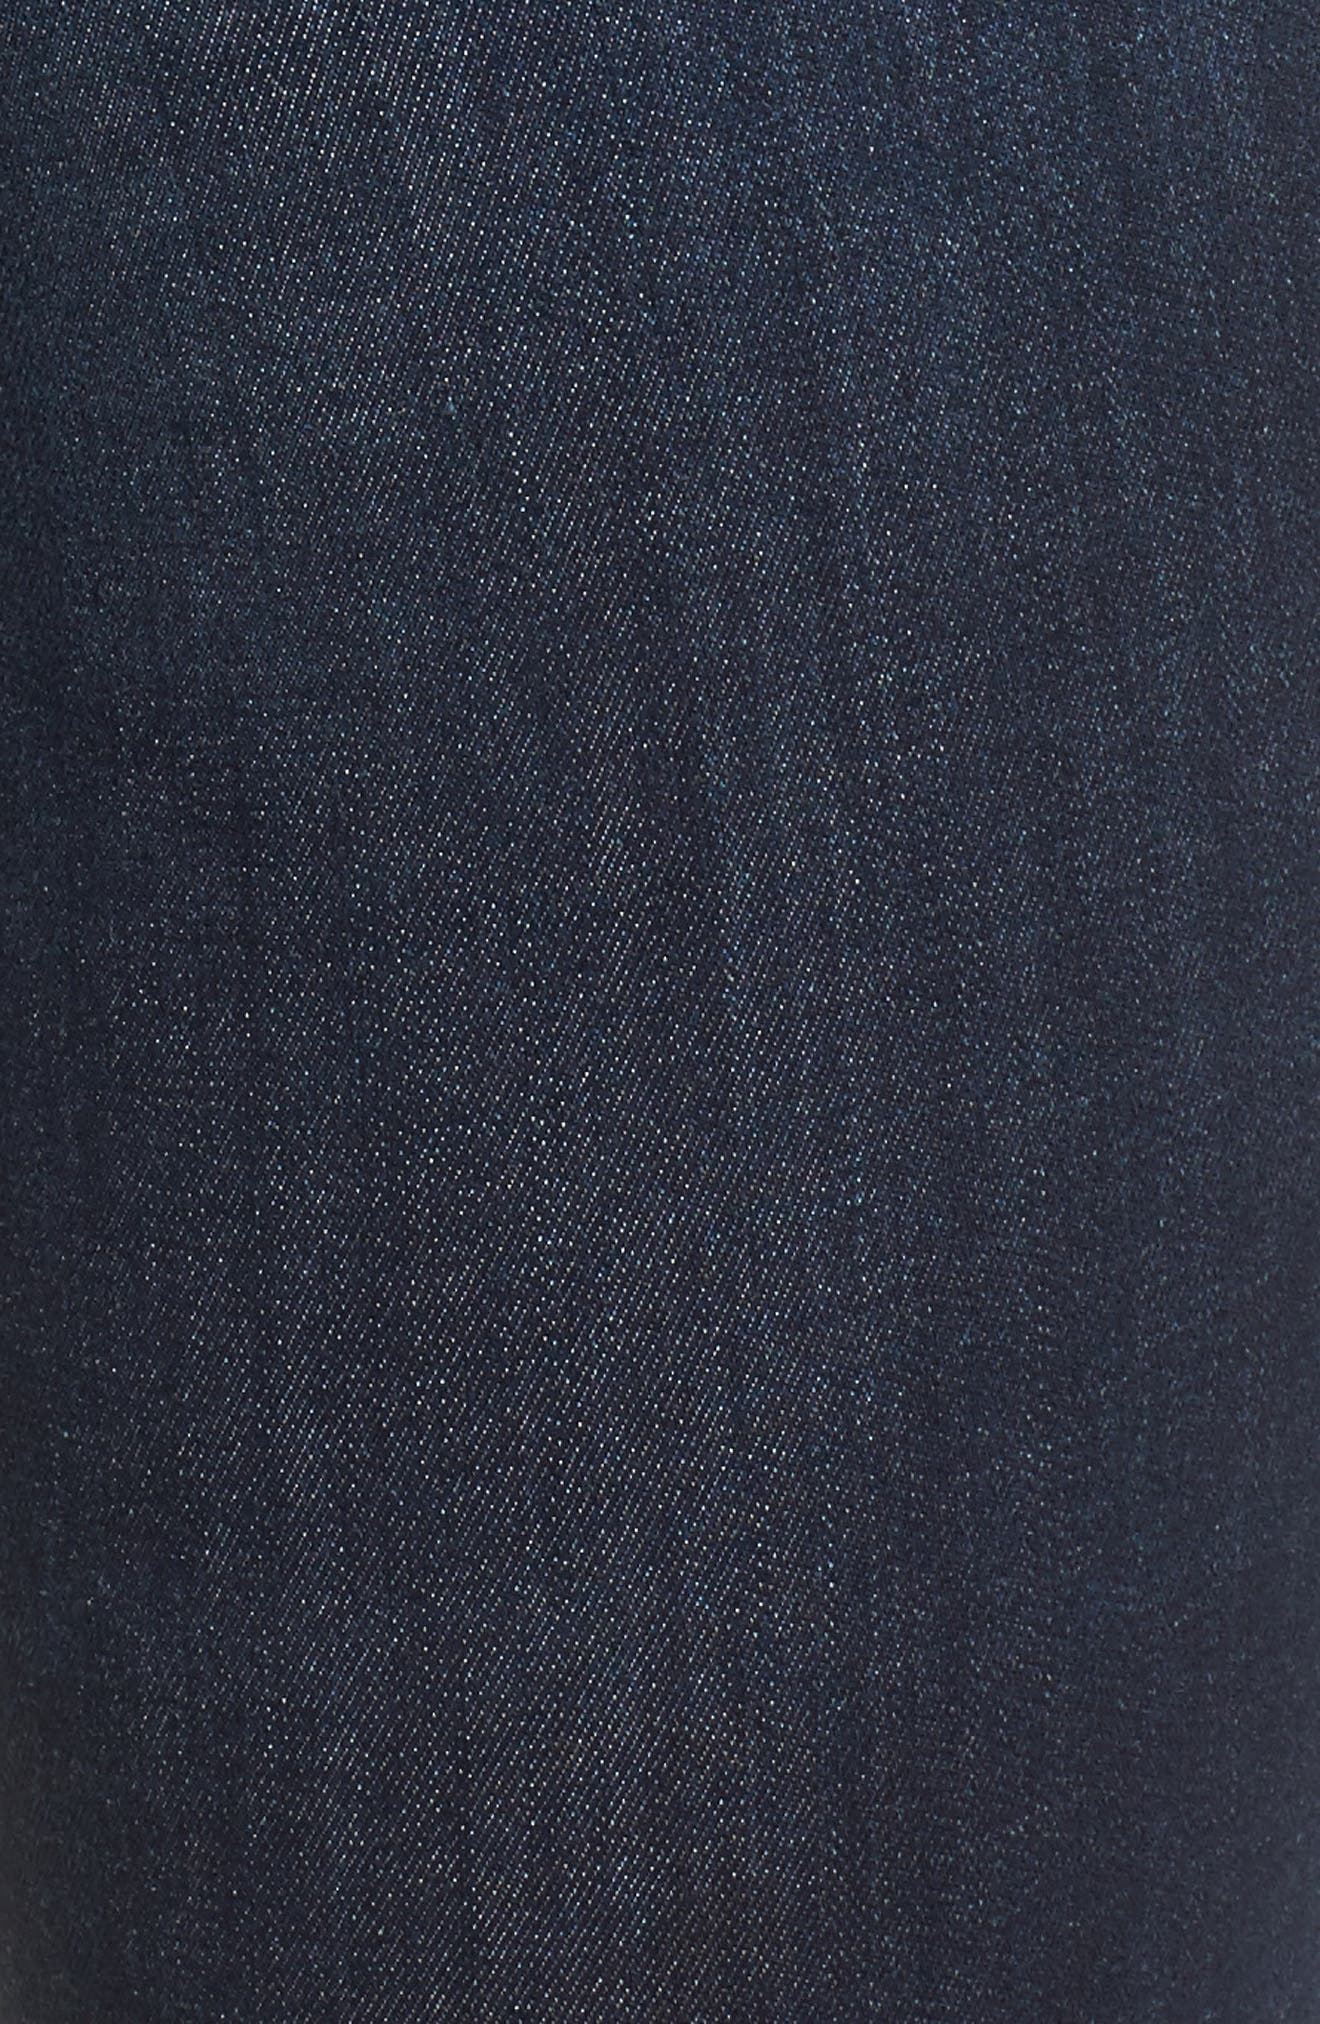 MADEWELL, 9-Inch High Rise Skinny Jeans, Alternate thumbnail 7, color, LARKSPUR